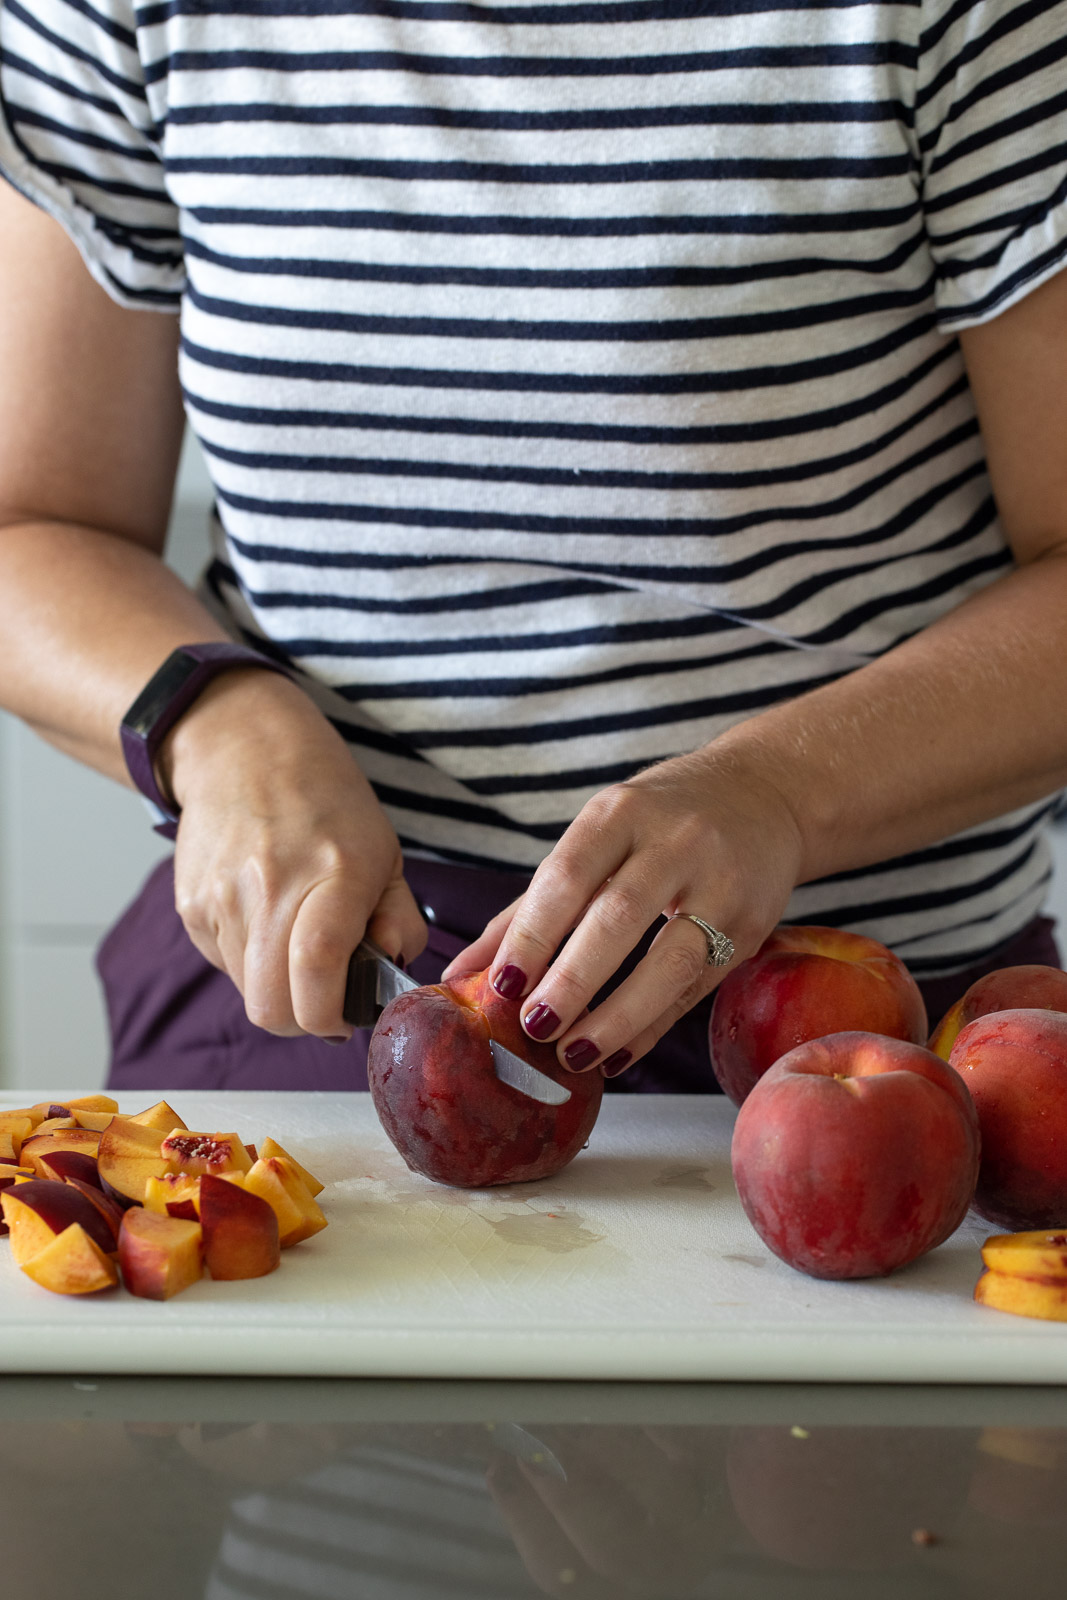 Woman slicing peaches on a white cutting board.